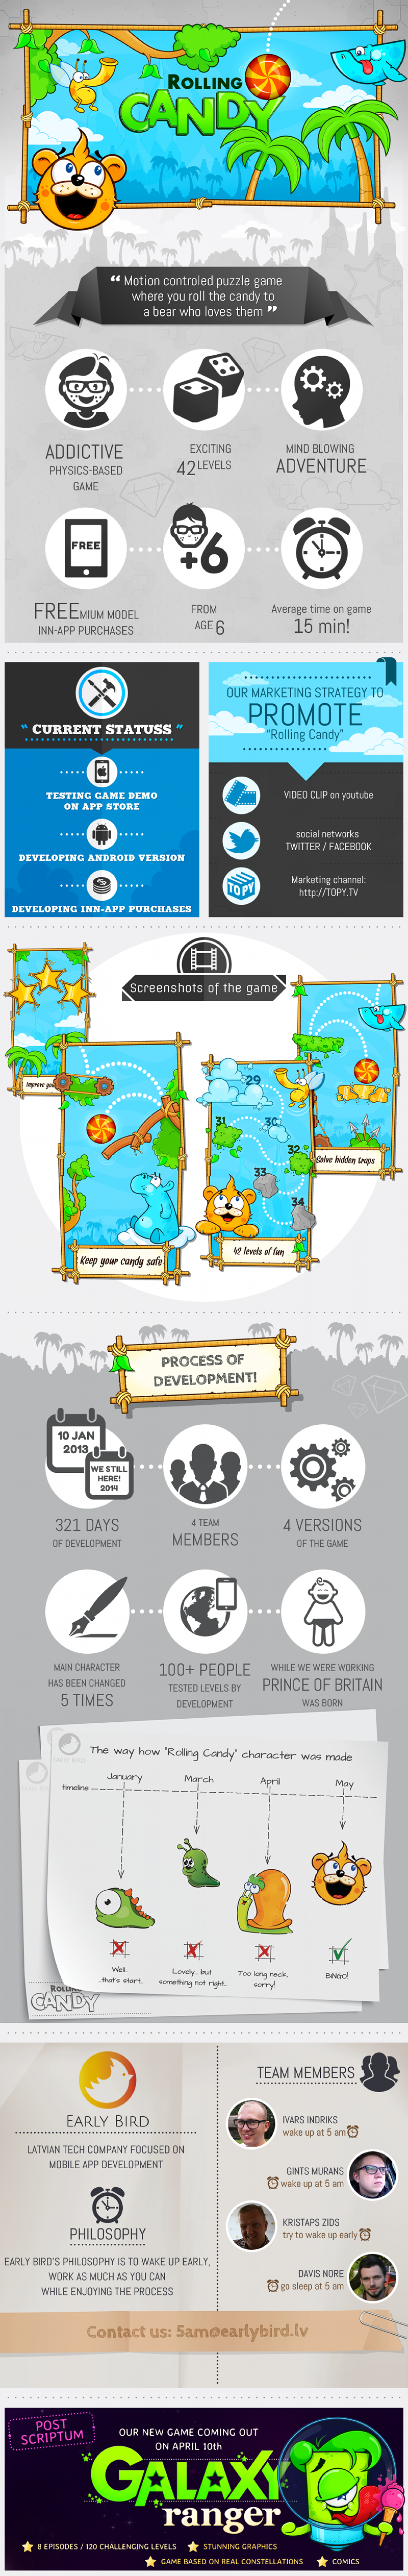 Rolling Candy game  development Infographic